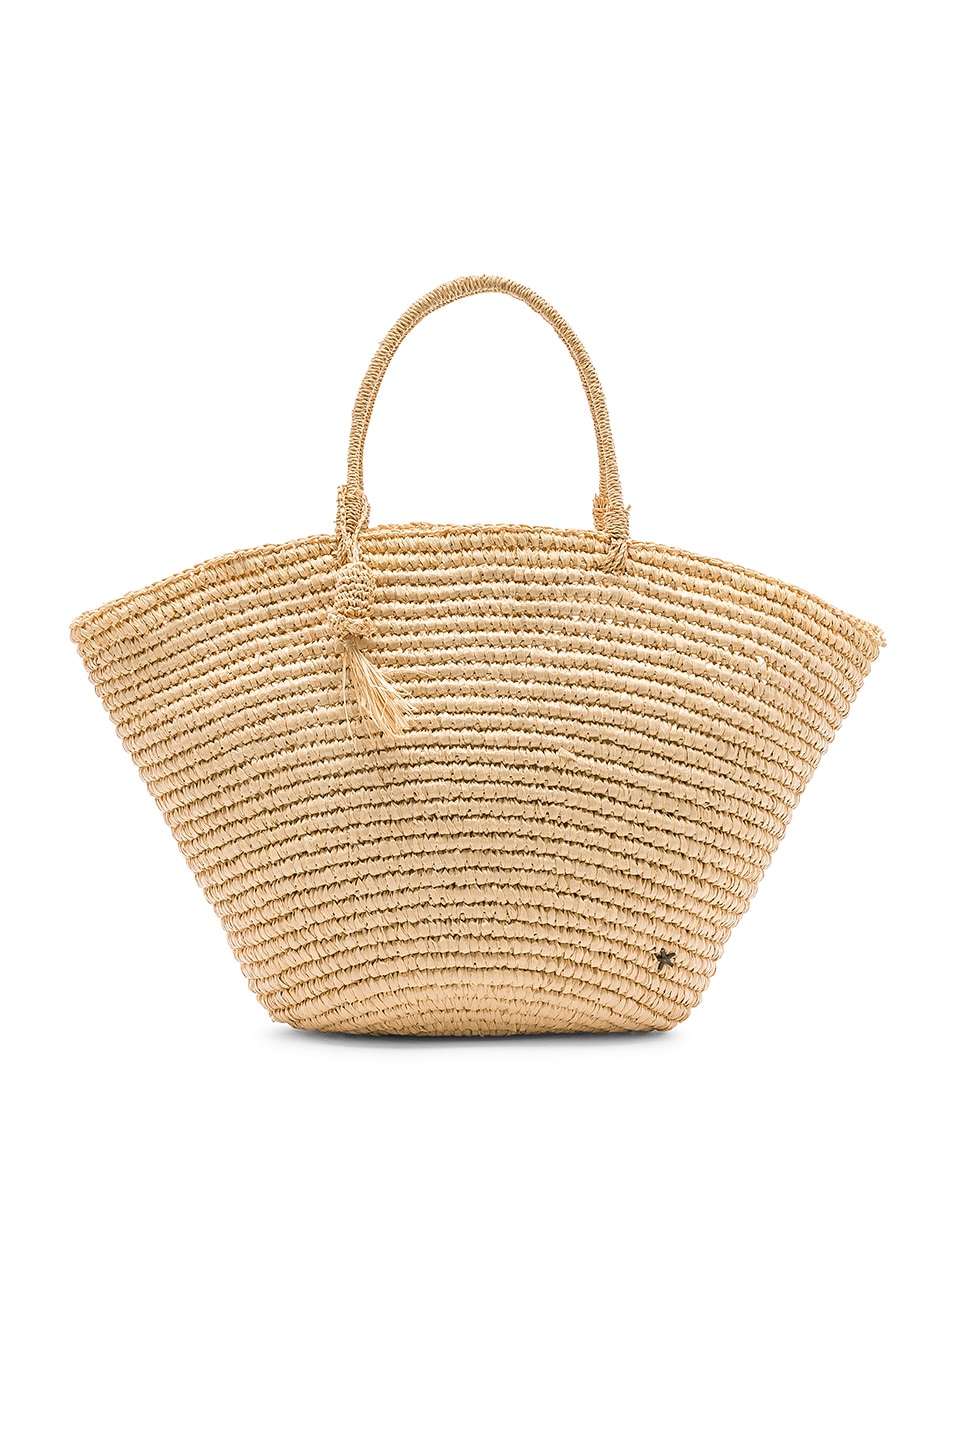 florabella Montanita Bag in Birch & Natural